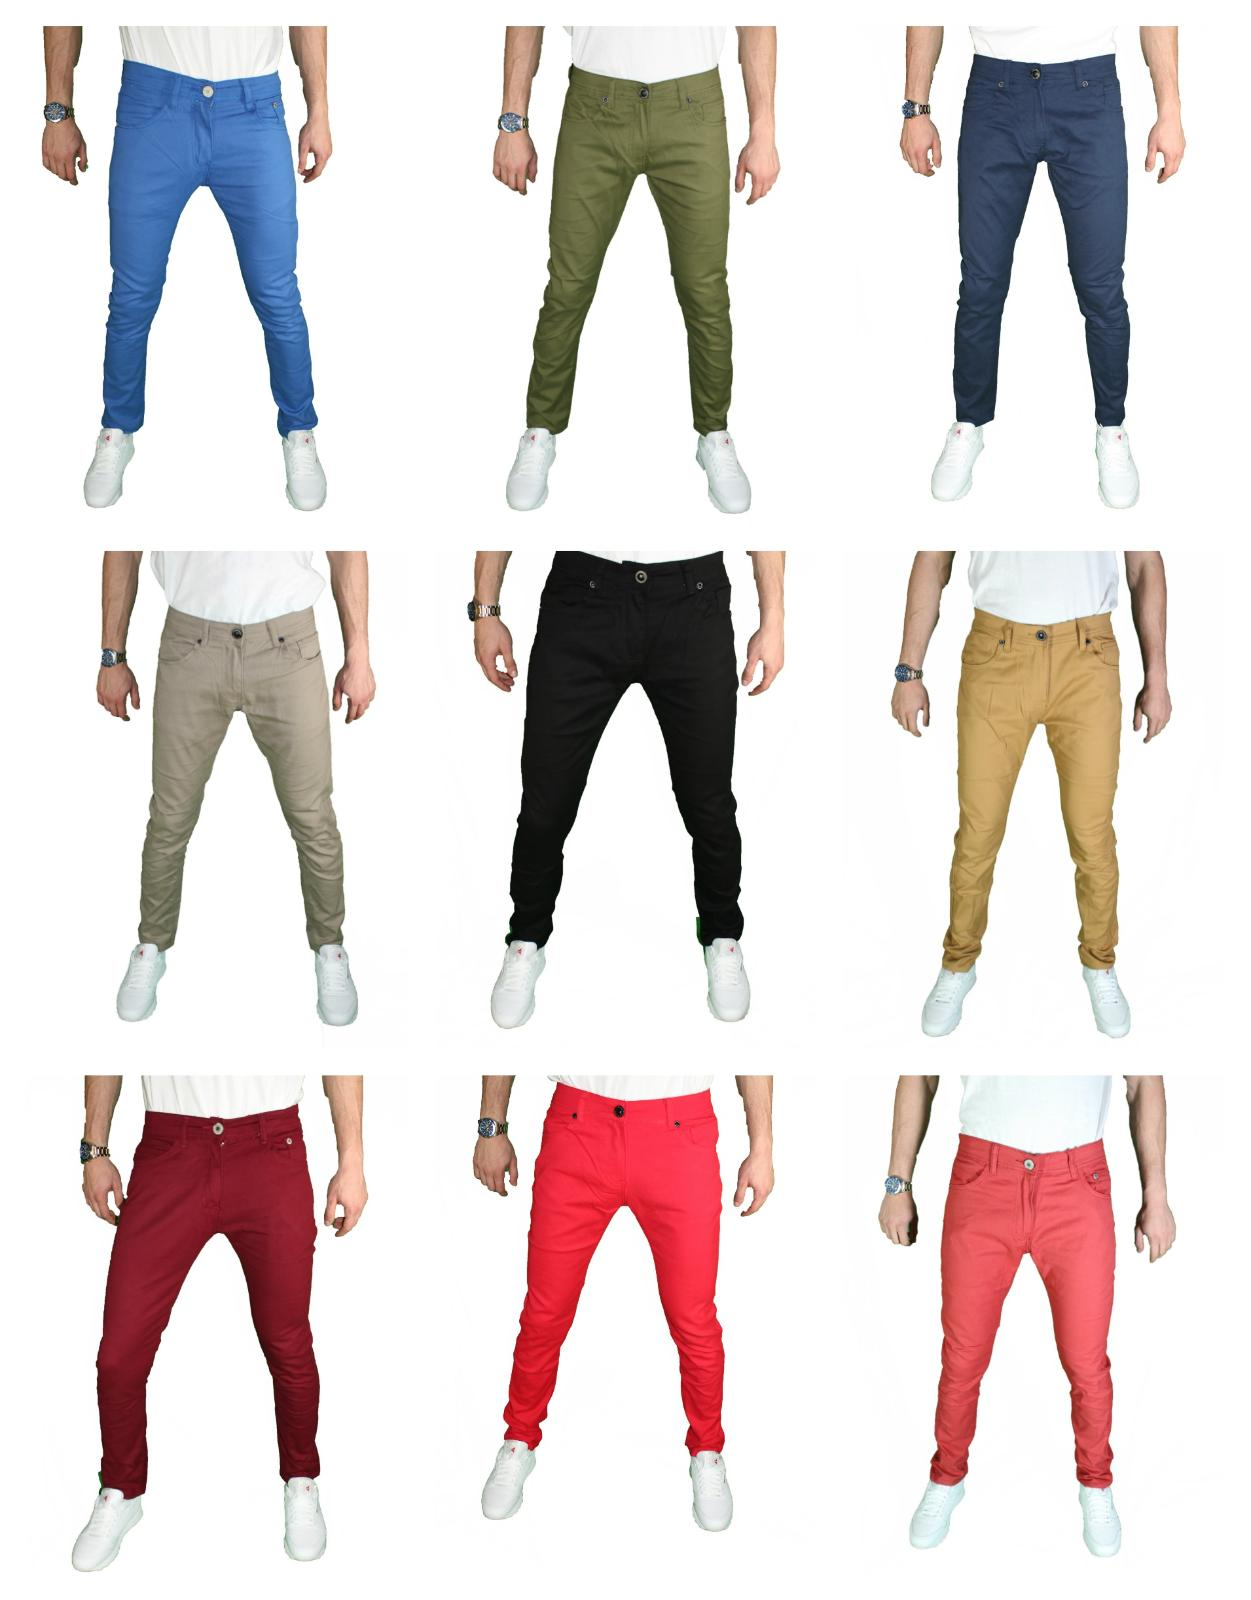 Mens Slim Fit Stretch Pants Fashion Casual Trouser Chino Jea